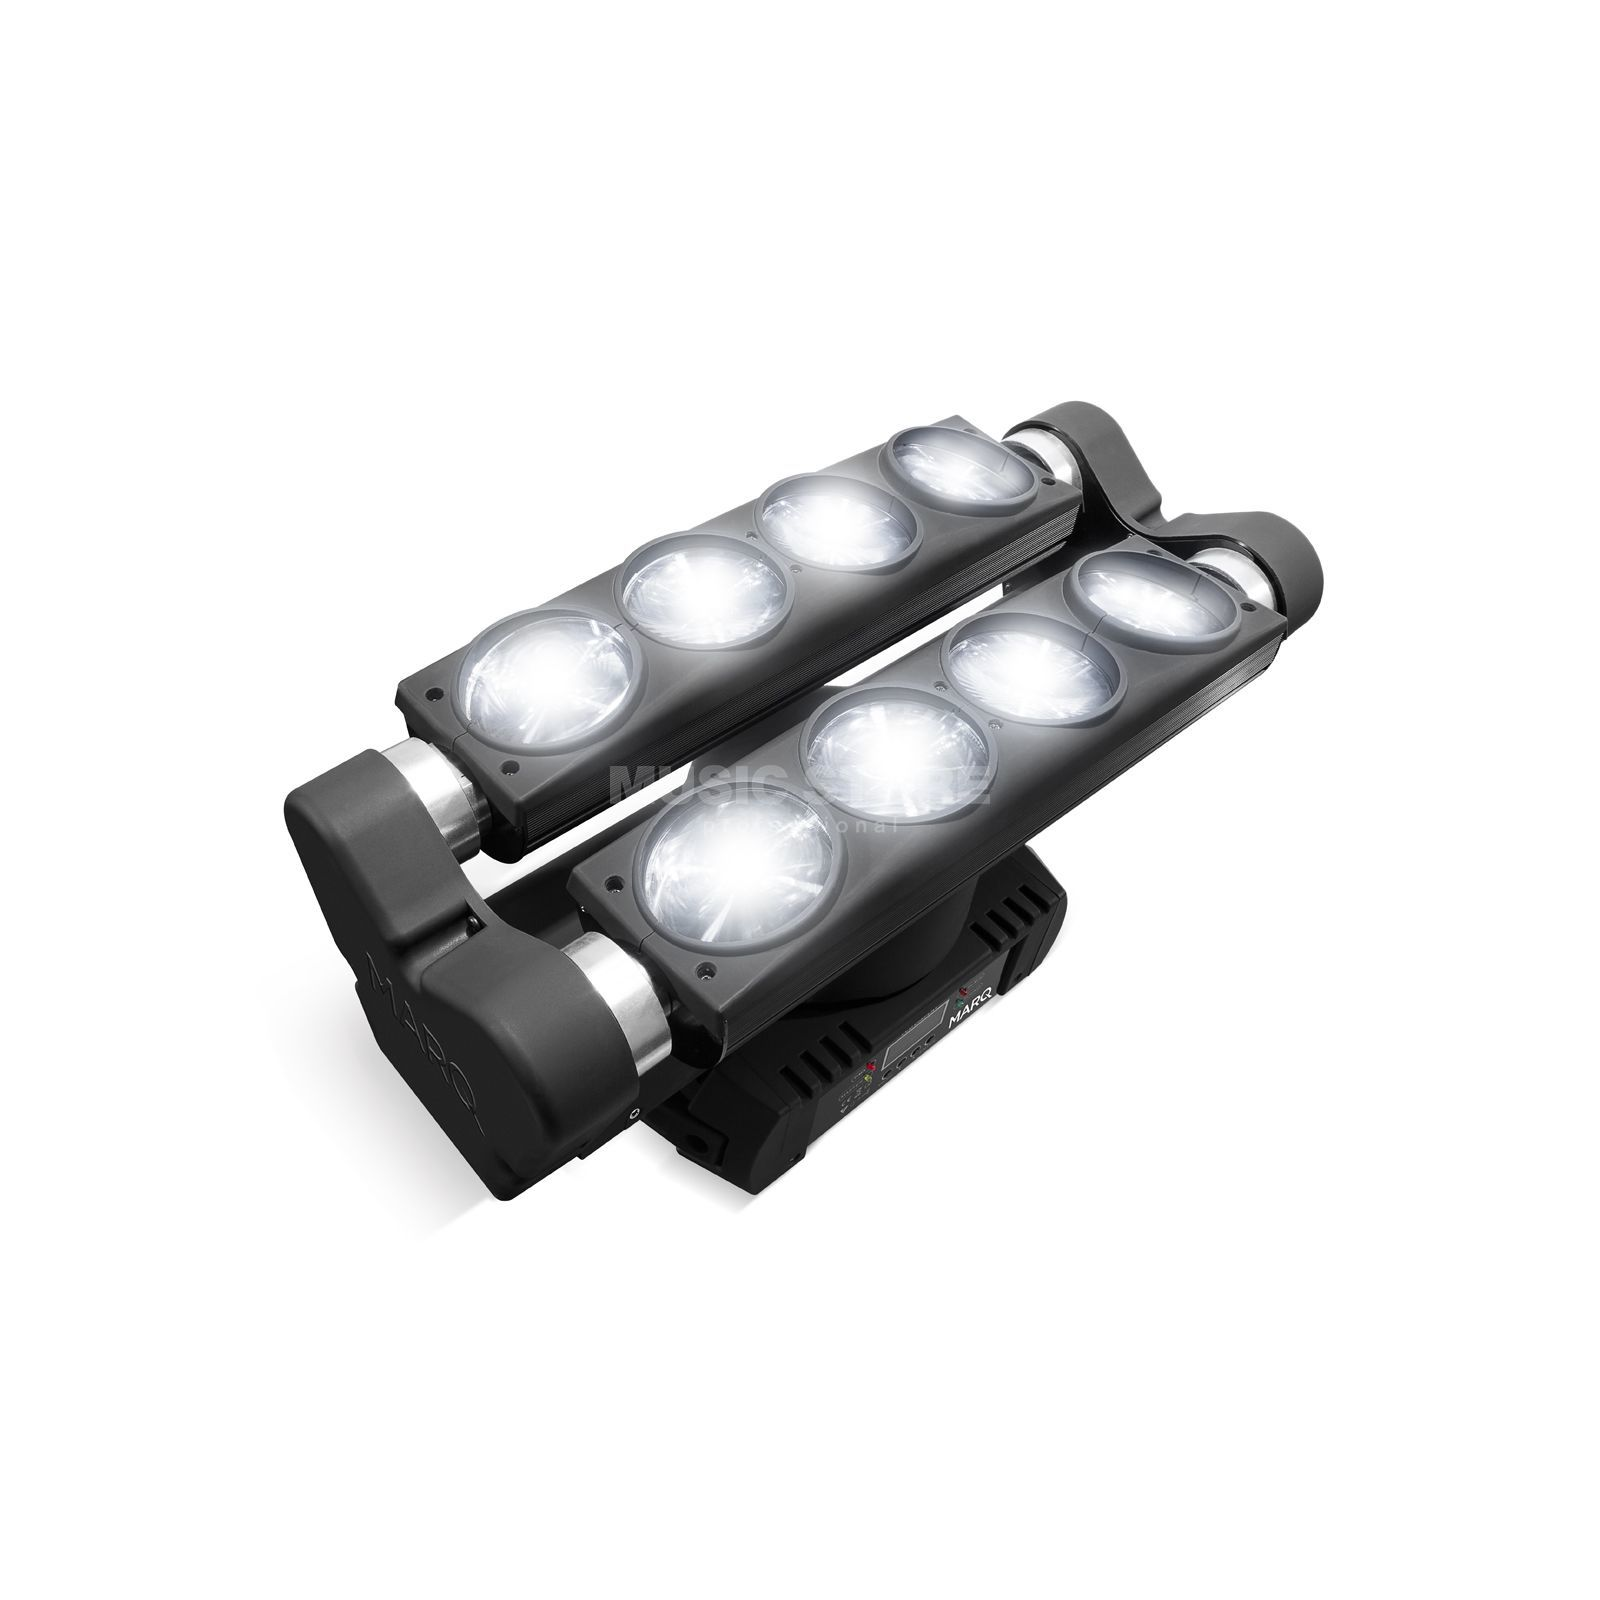 MARQ Lighting Ray Tracer X 8x 10W CREE Dual Tilt Beam Movinghead Produktbillede